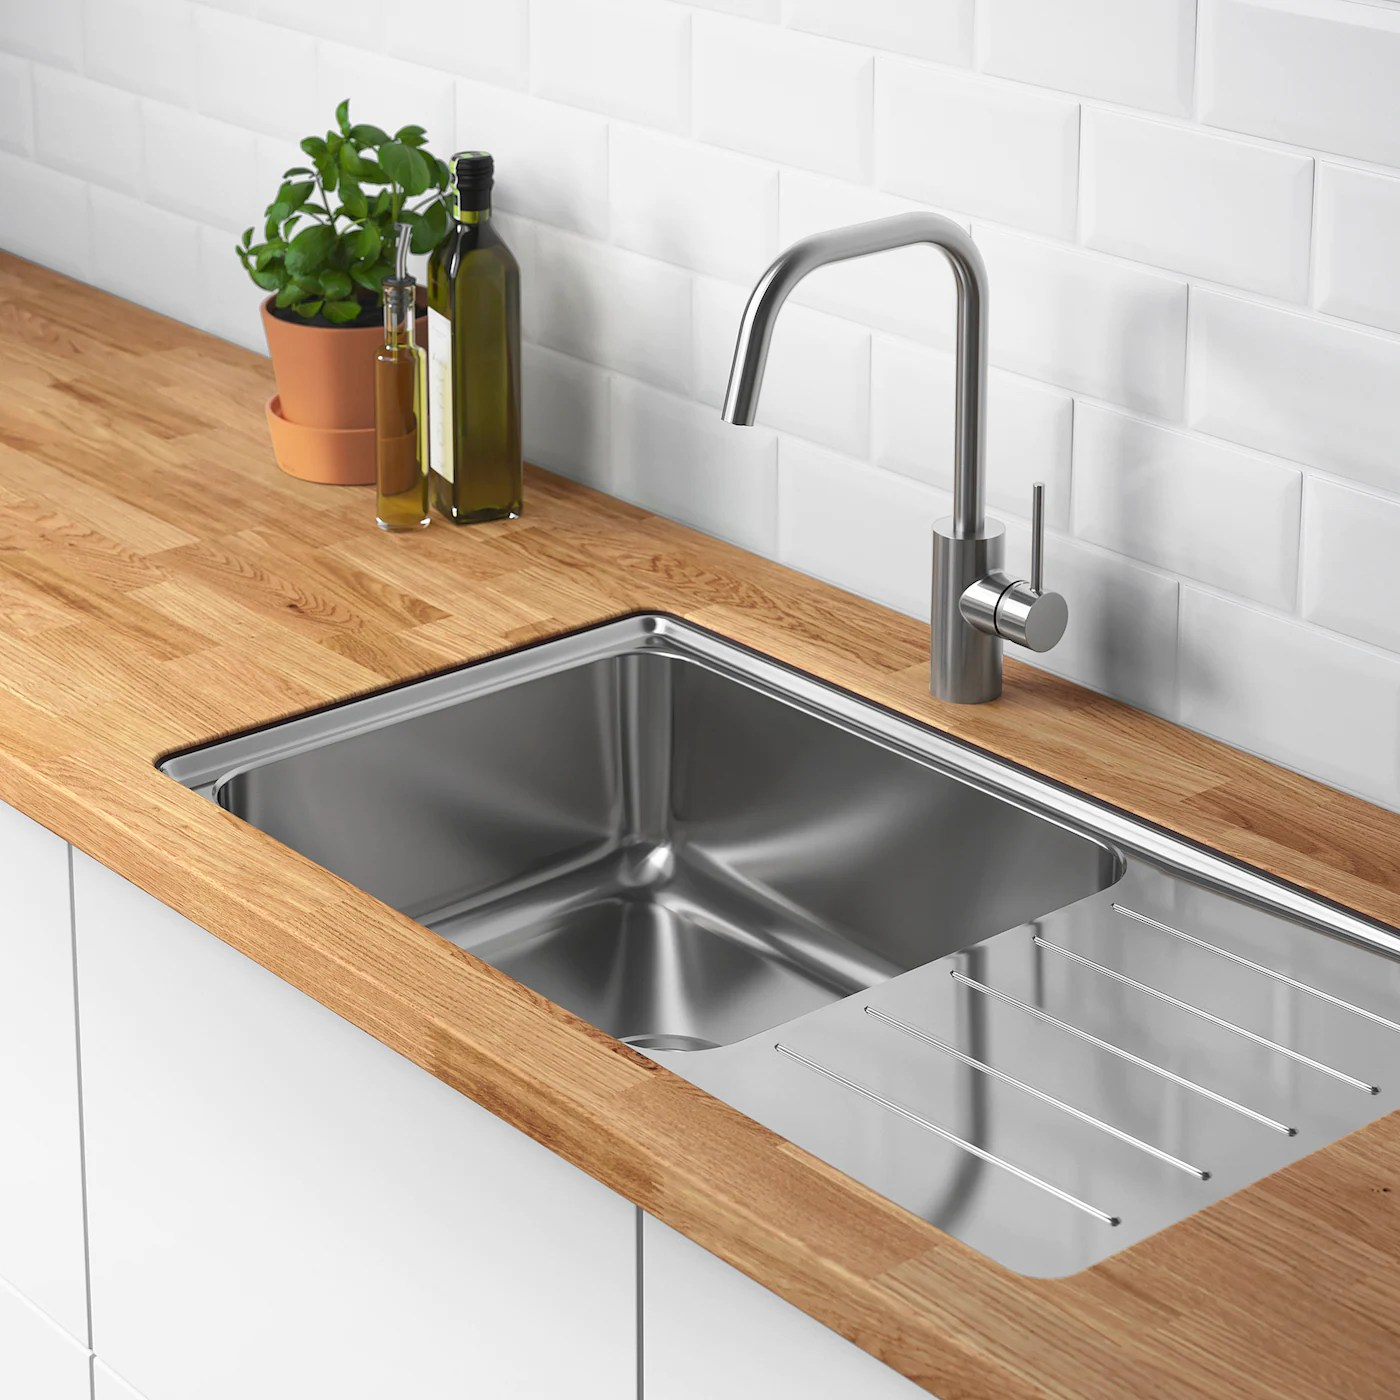 Vattudalen Inset Sink 1 Bowl With Drainboard Stainless Steel For Custom Made Worktop Wood 86x47 Cm Ikea